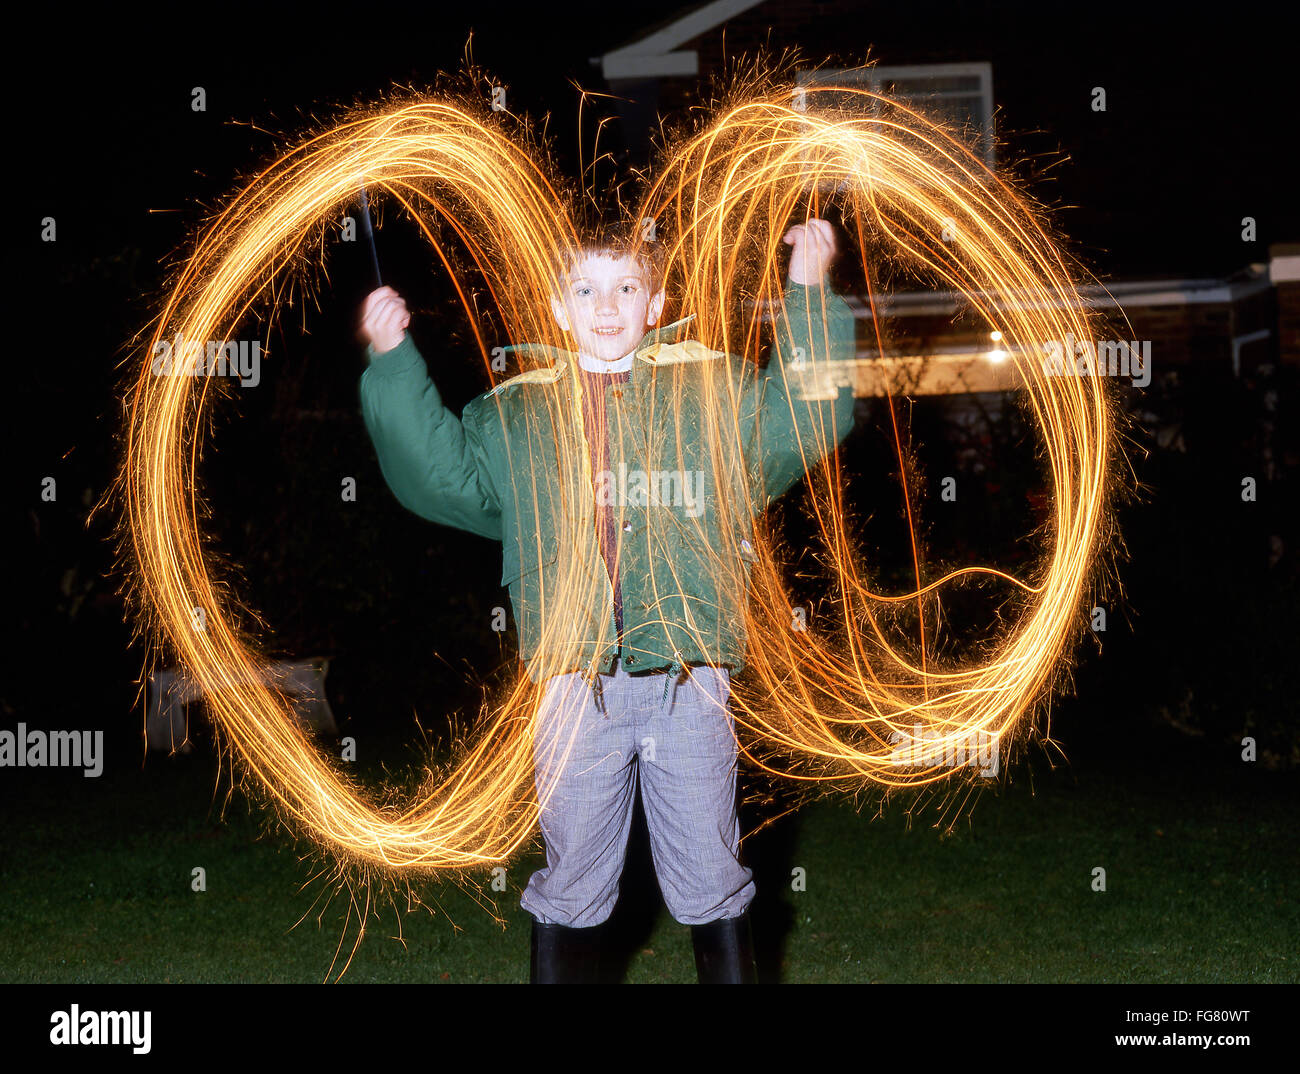 Young boy making circles with sparklers on Fireworks Night, Berkshire, England, United Kingdom Stock Photo